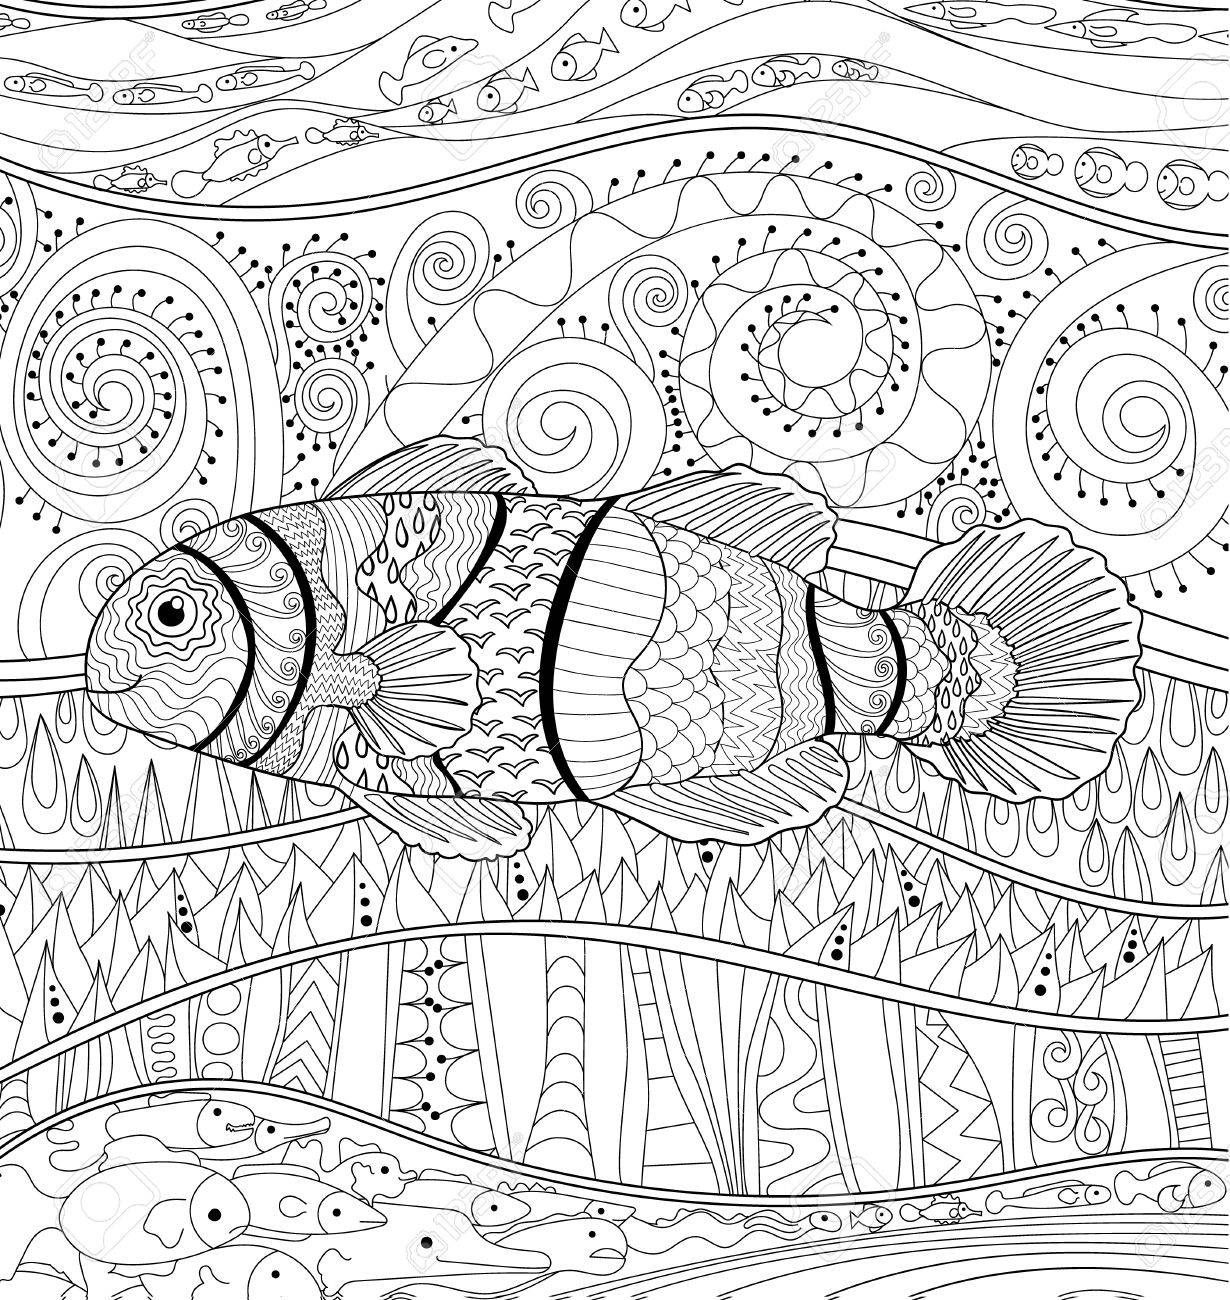 Clownfish with high details. Adult antistress coloring page...